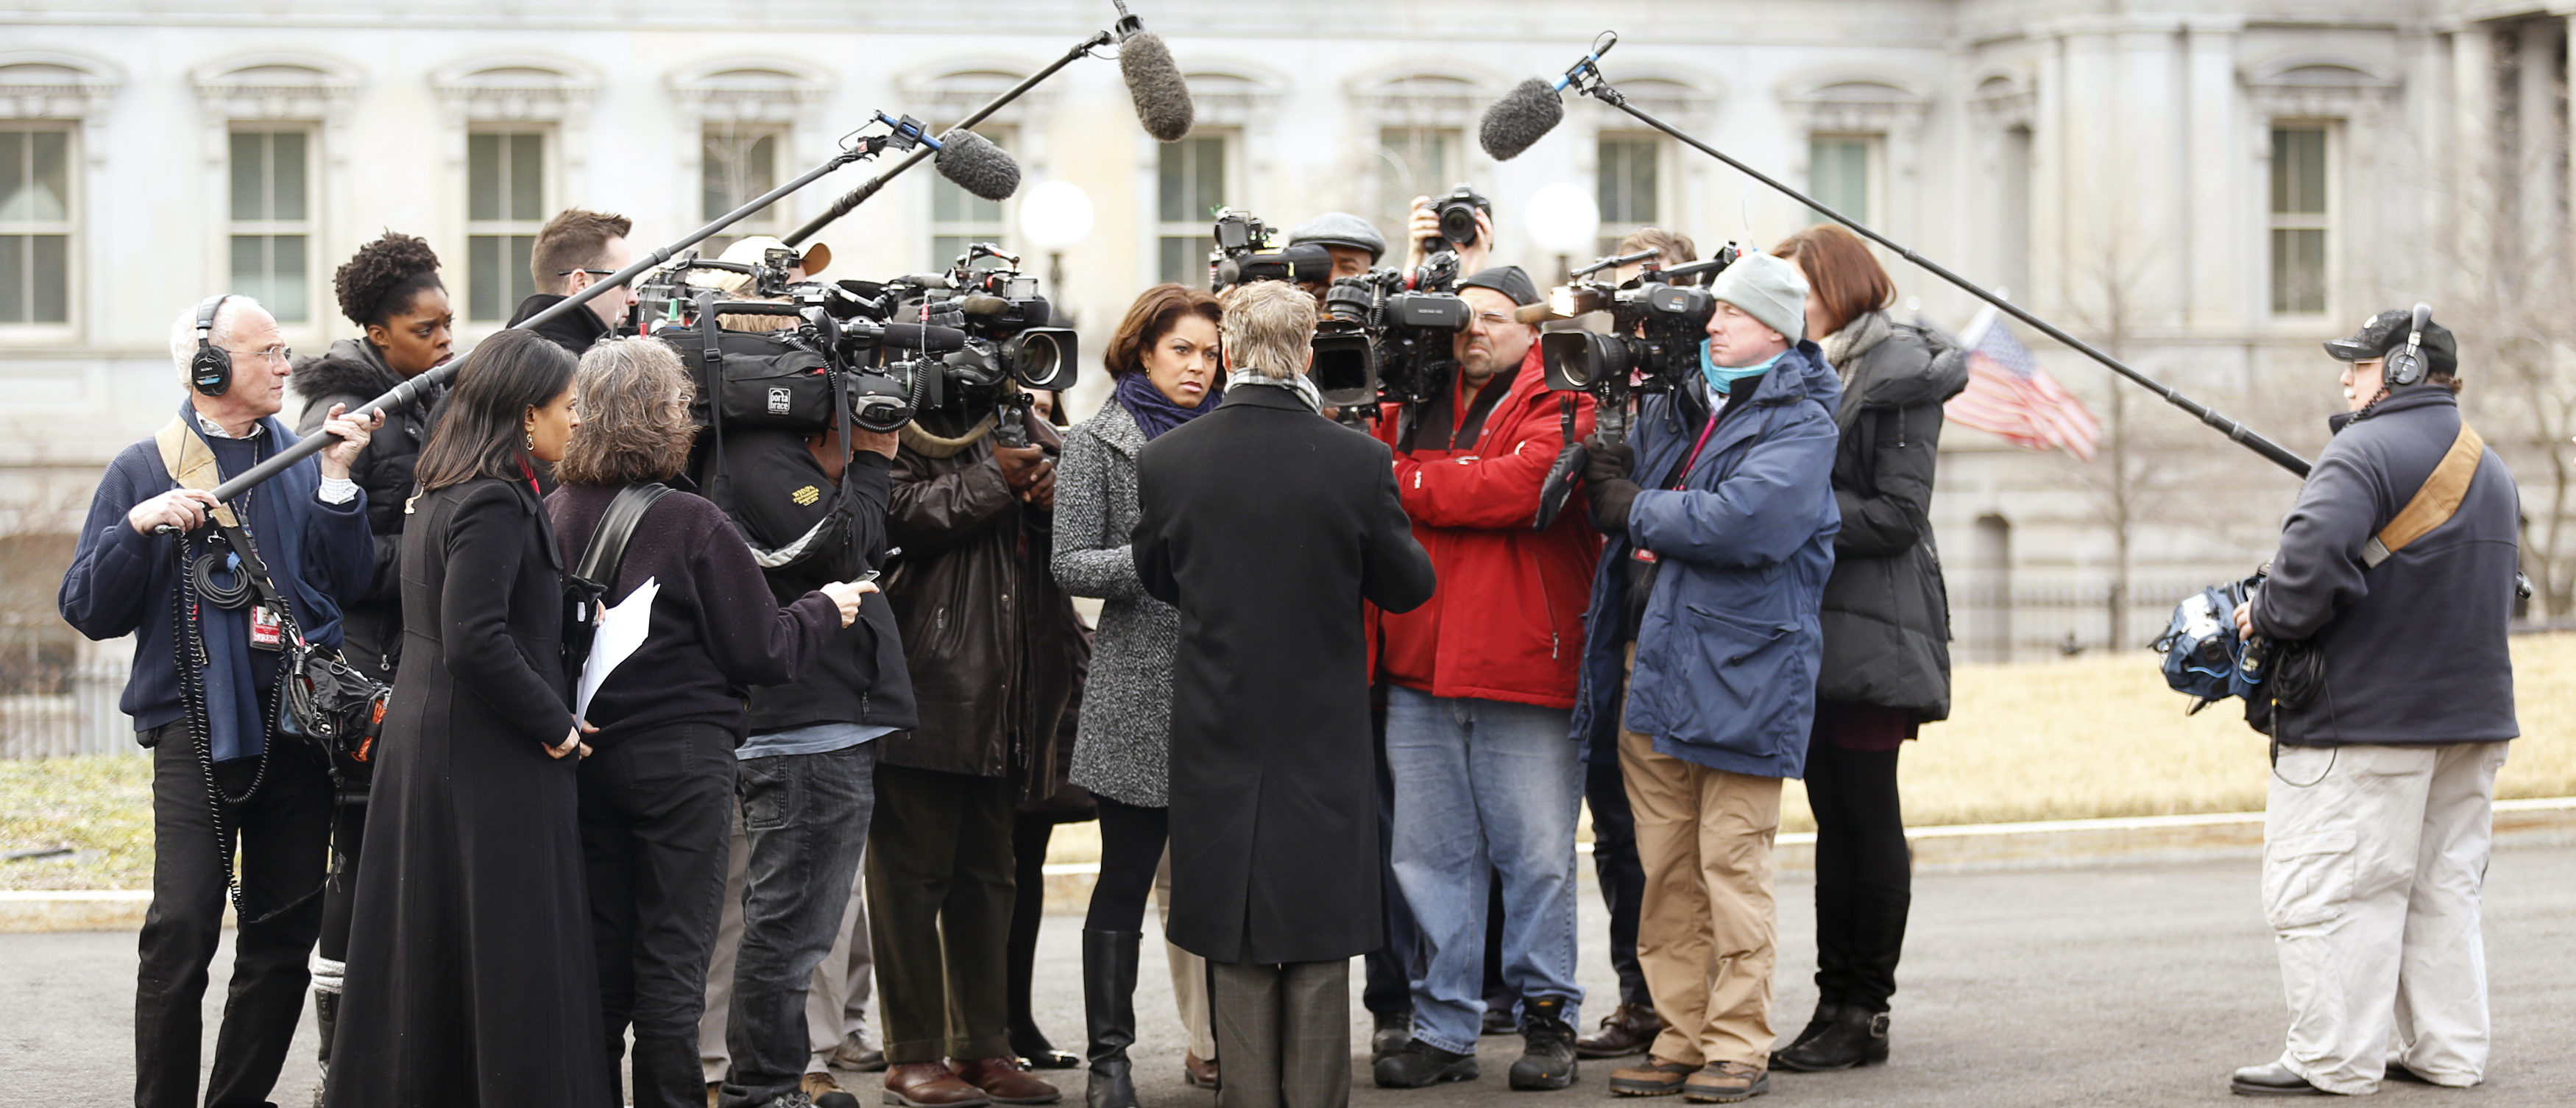 Reporters and TV crews surround Senator Rand Paul (R-KY) (back to camera) in the driveway of the White House in Washington January 9, 2014. REUTERS/Kevin Lamarque